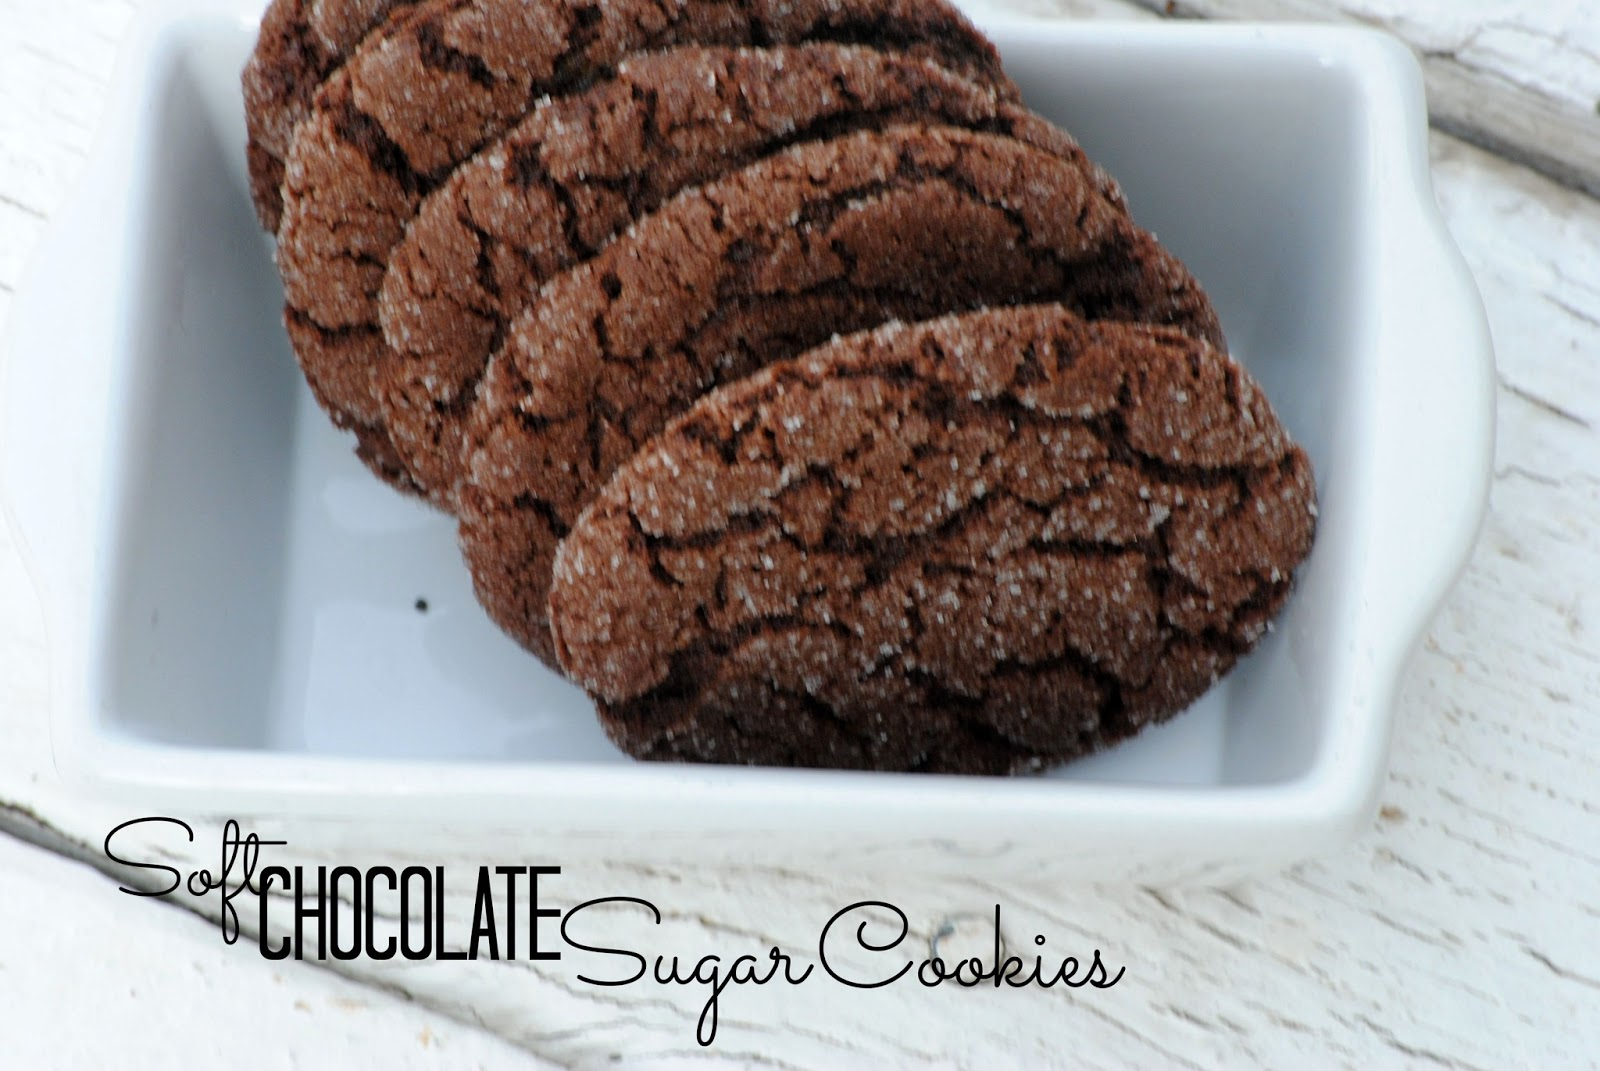 The Farm Girl Recipes: Soft Chocolate Sugar Cookies